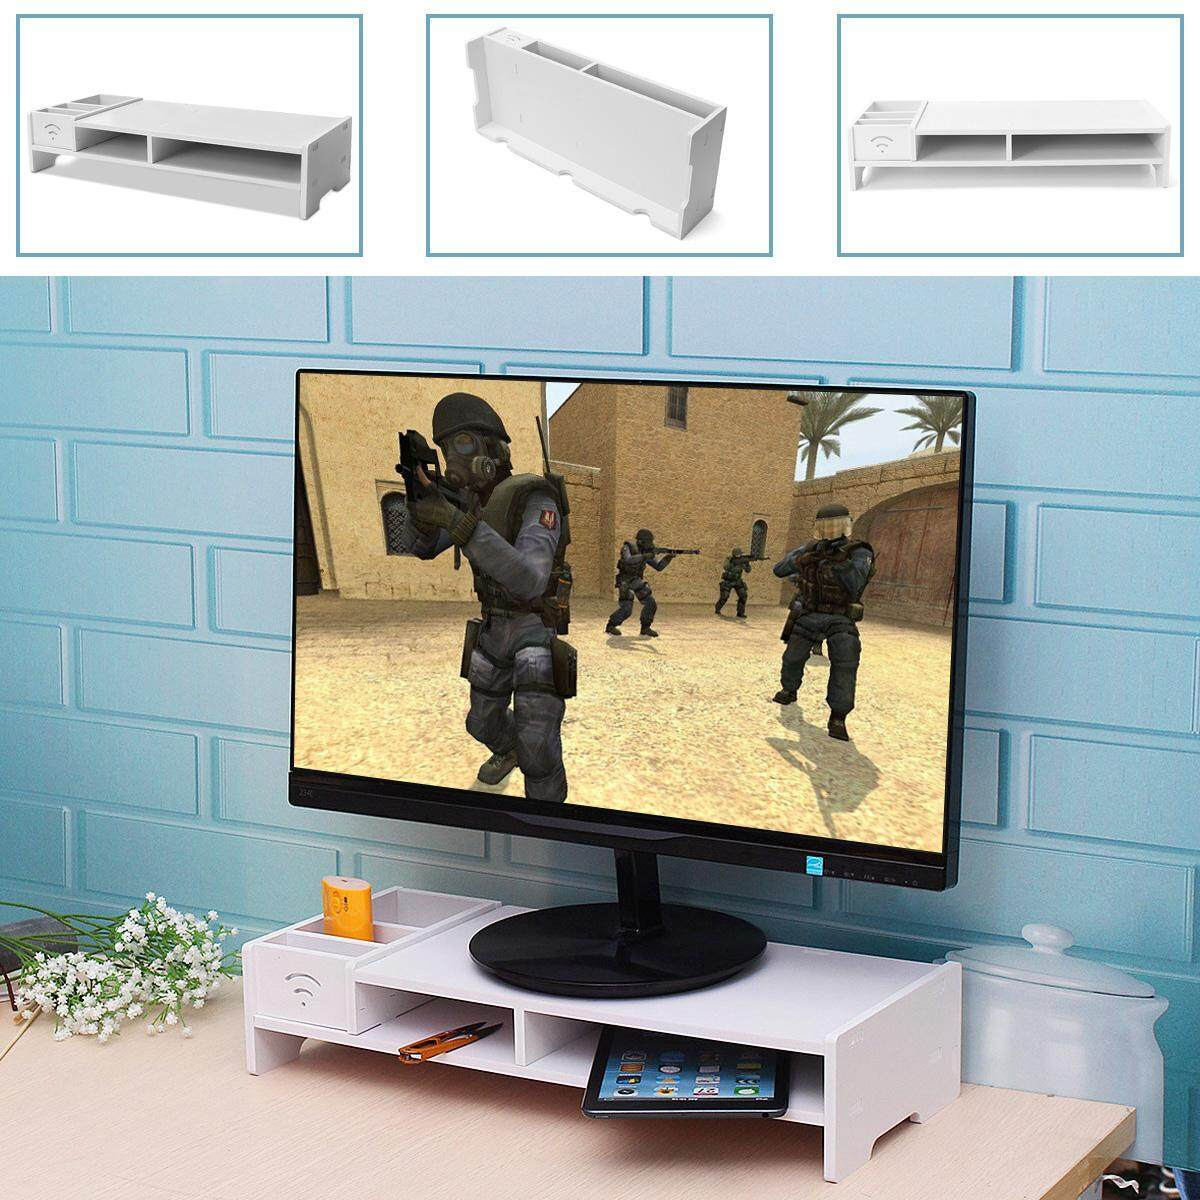 488x205x100mm Home Office WPC Desk PC Computer Monitor LCD TV Stand Riser Keyboard Shelf Rack